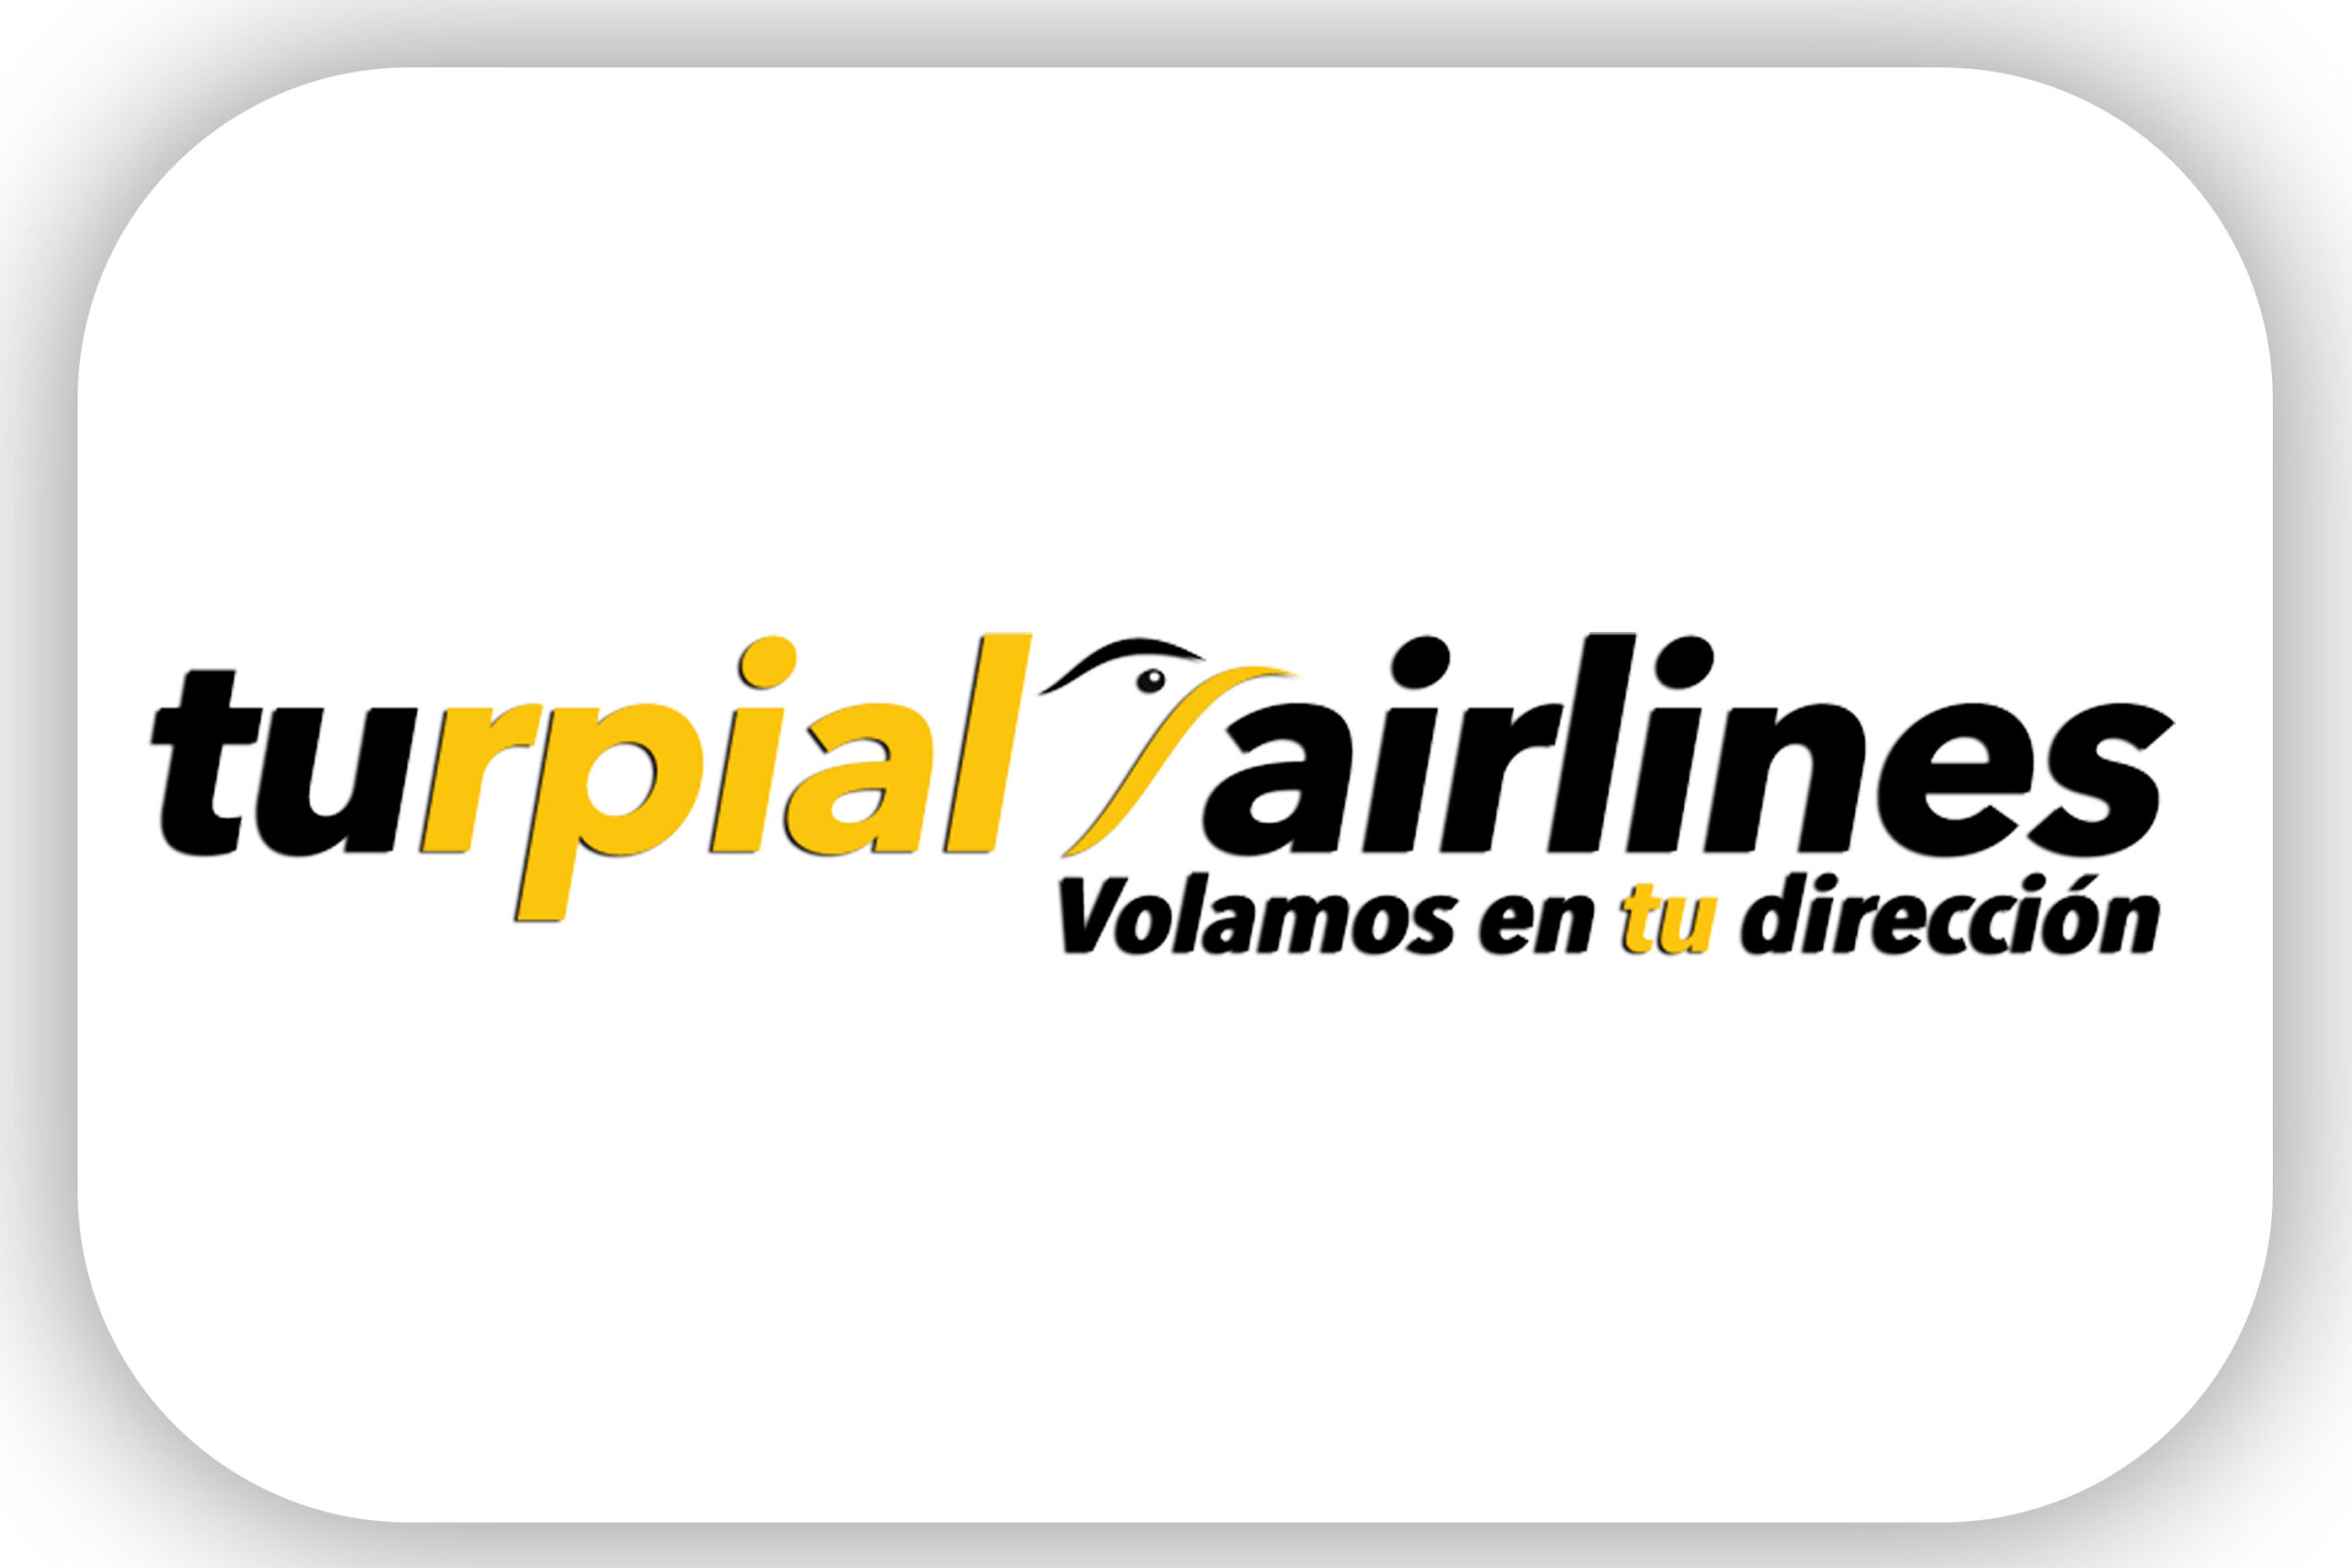 turpial-airlines